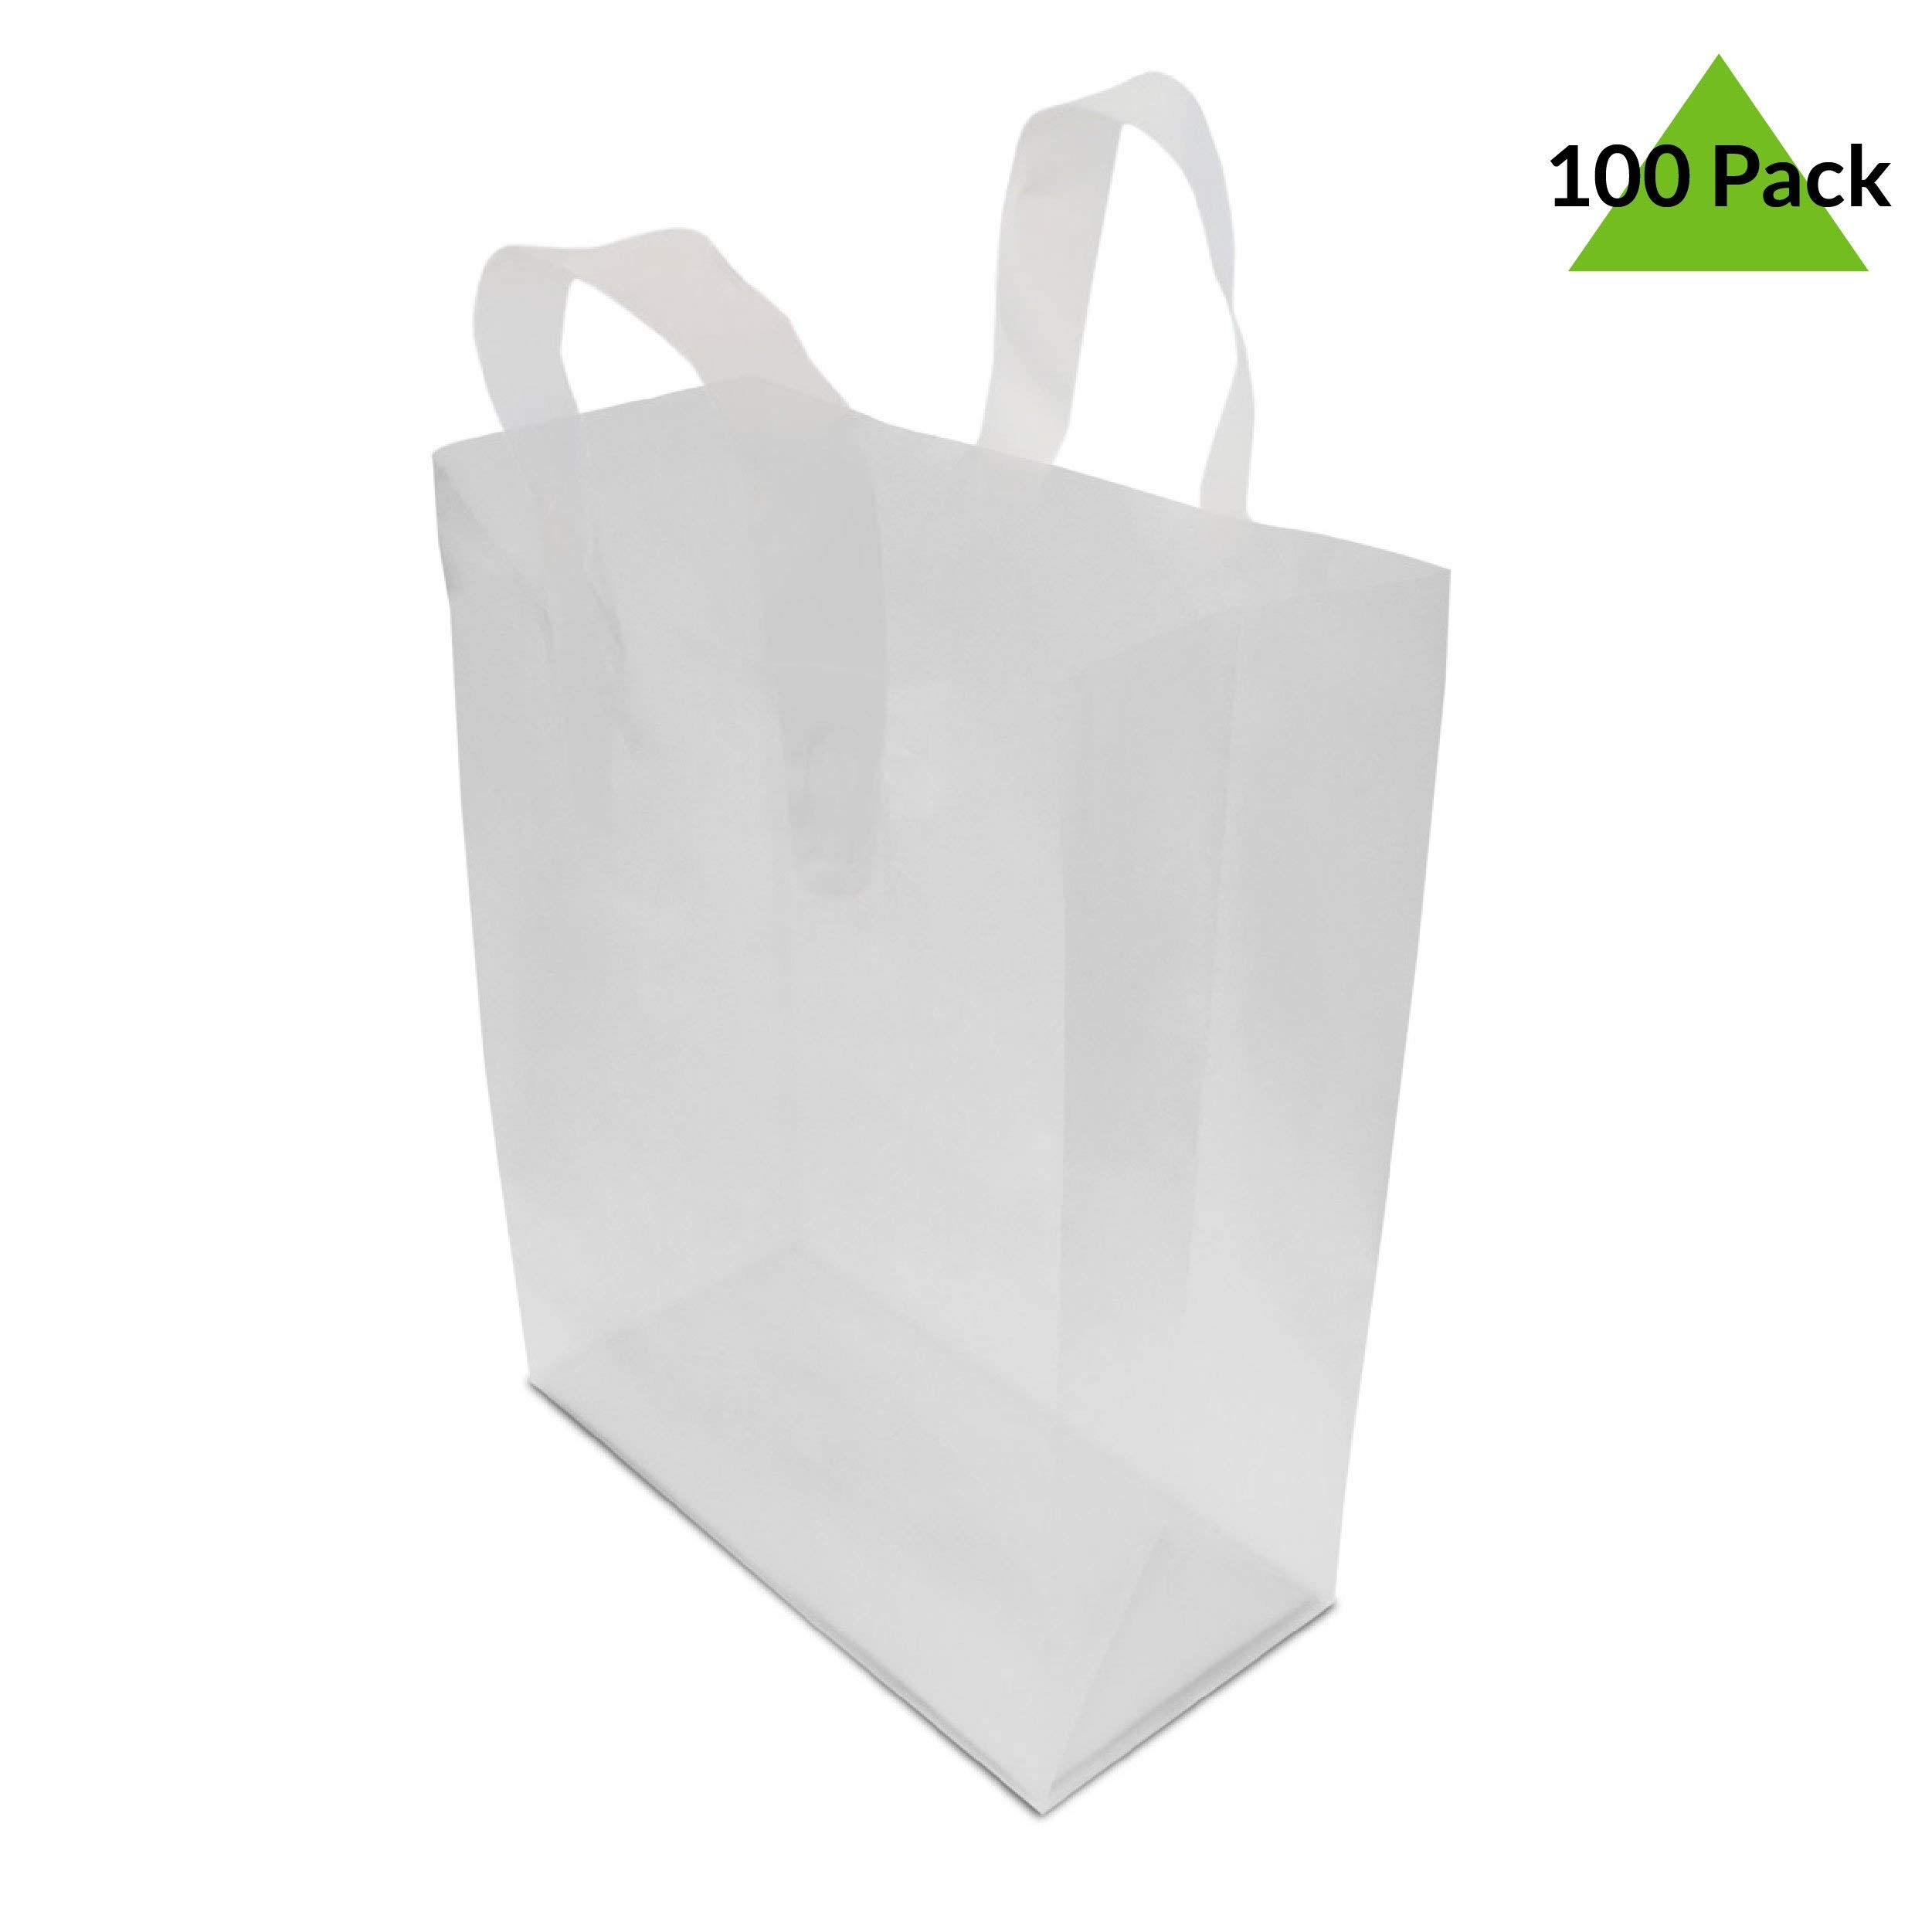 8x4x10'' 100 Pcs. Frosted Clear Plastic Bags with Handles, Shopping Bags, Gift Bags, Take Out Bags with Cardboard Bottom